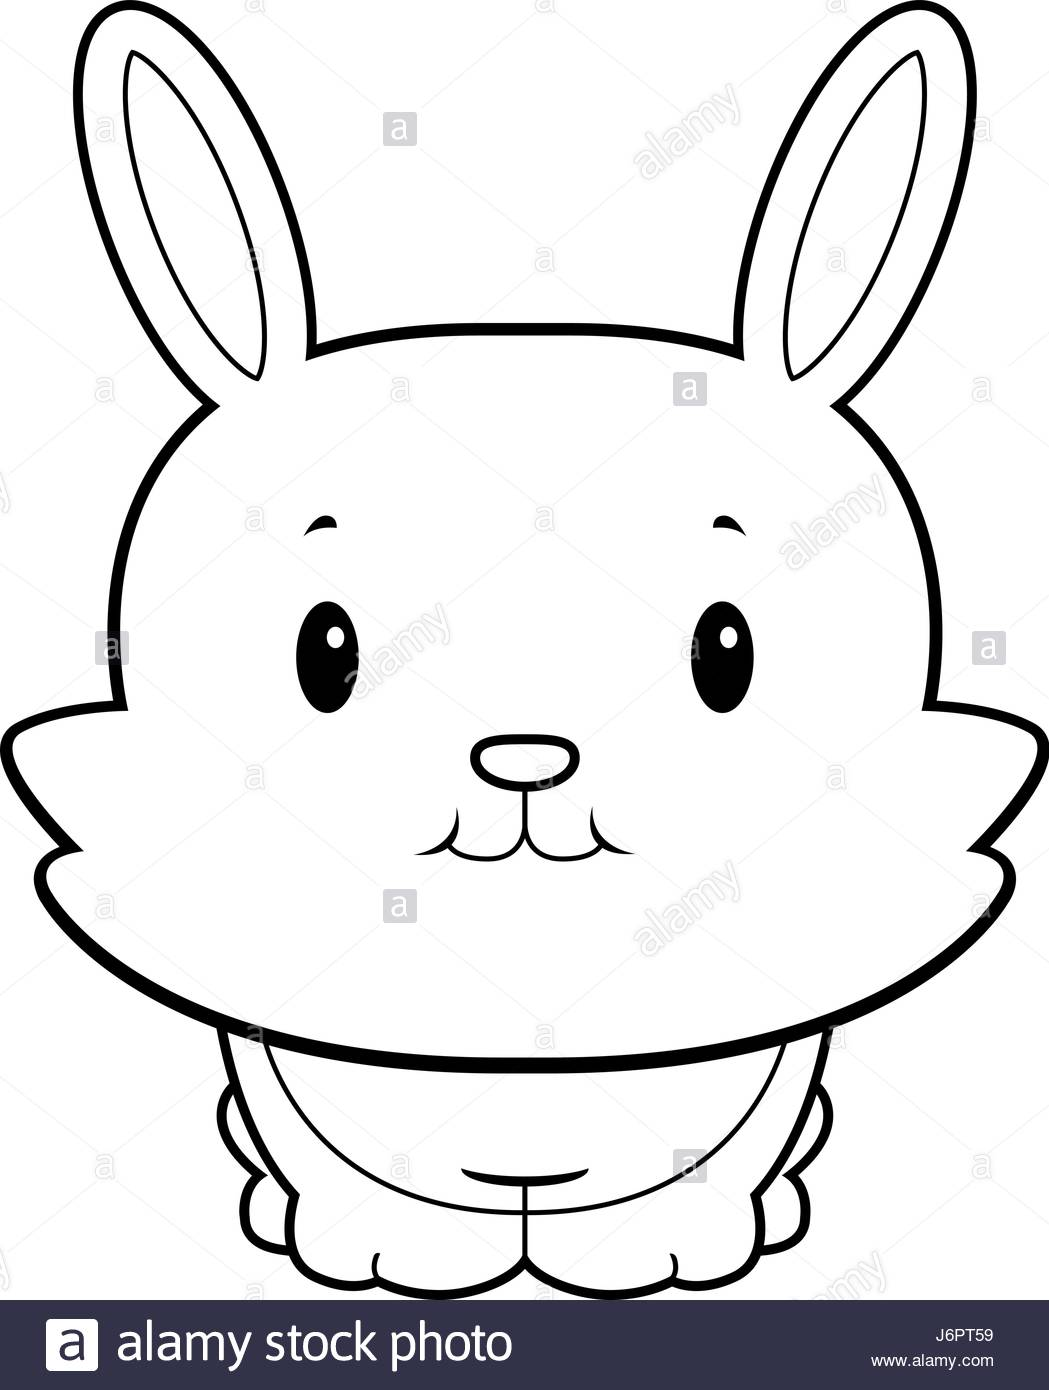 1049x1390 Baby Bunny Black And White Stock Photos Amp Images